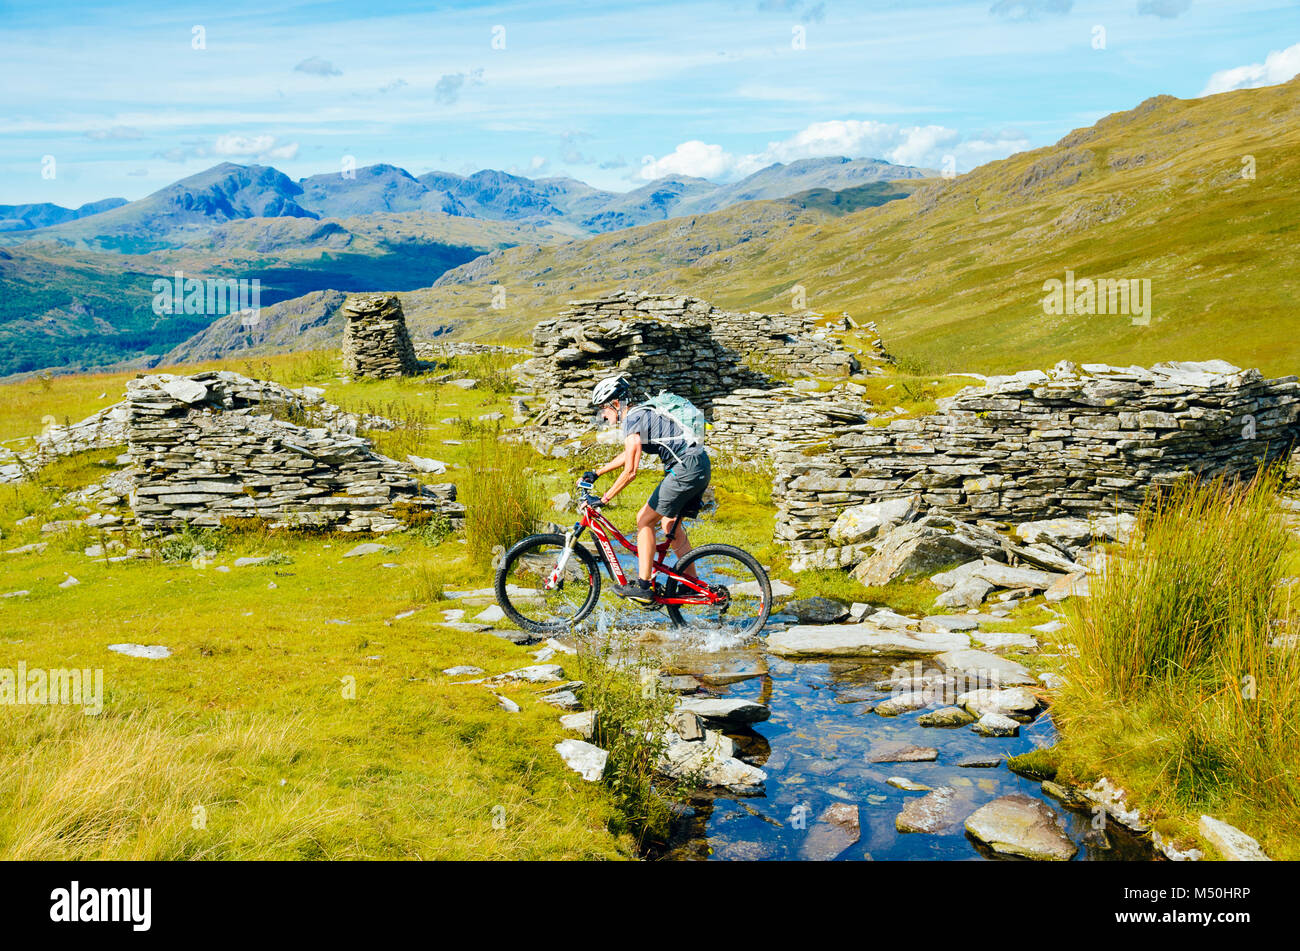 Femmina mountain biker passando le rovine di cava a Walna Scar cave nel Lake District inglese con Lodore Falls e Immagini Stock